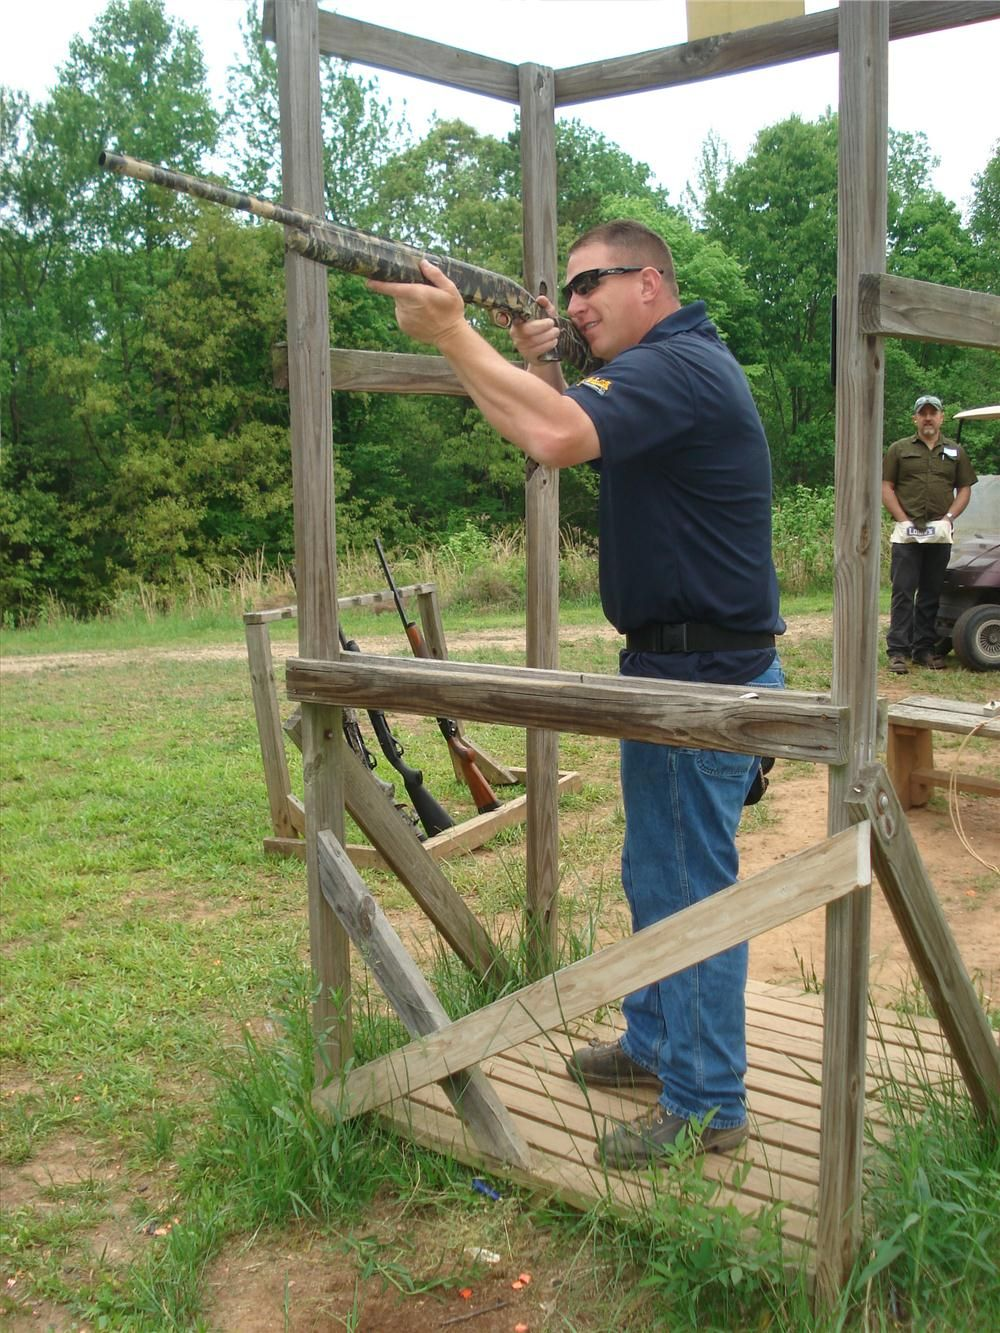 Todd Hunnicutt of Blue Ridge Excavating in Bostic, N.C., shoots both of the clays in this station.